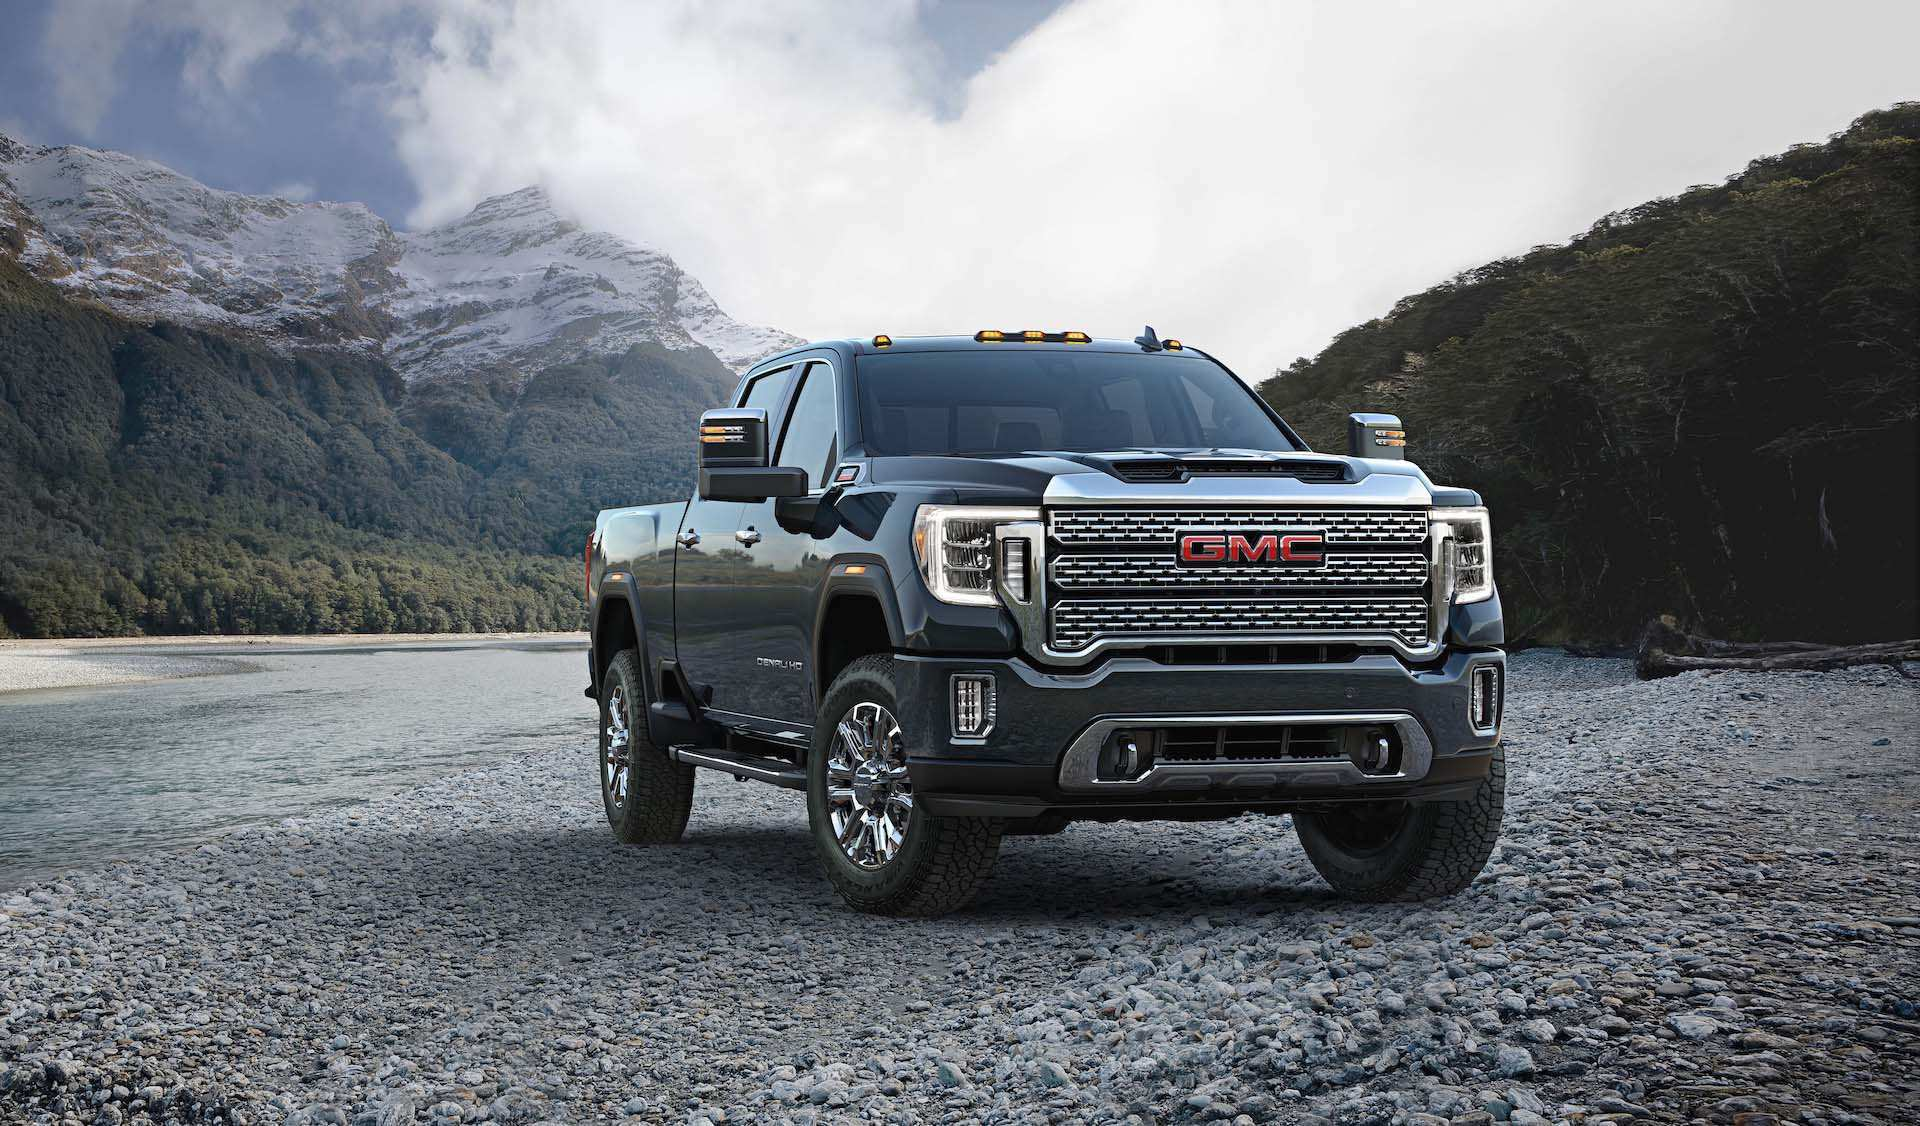 19 New Gmc Sierra Denali Hd 2020 Images with Gmc Sierra Denali Hd 2020